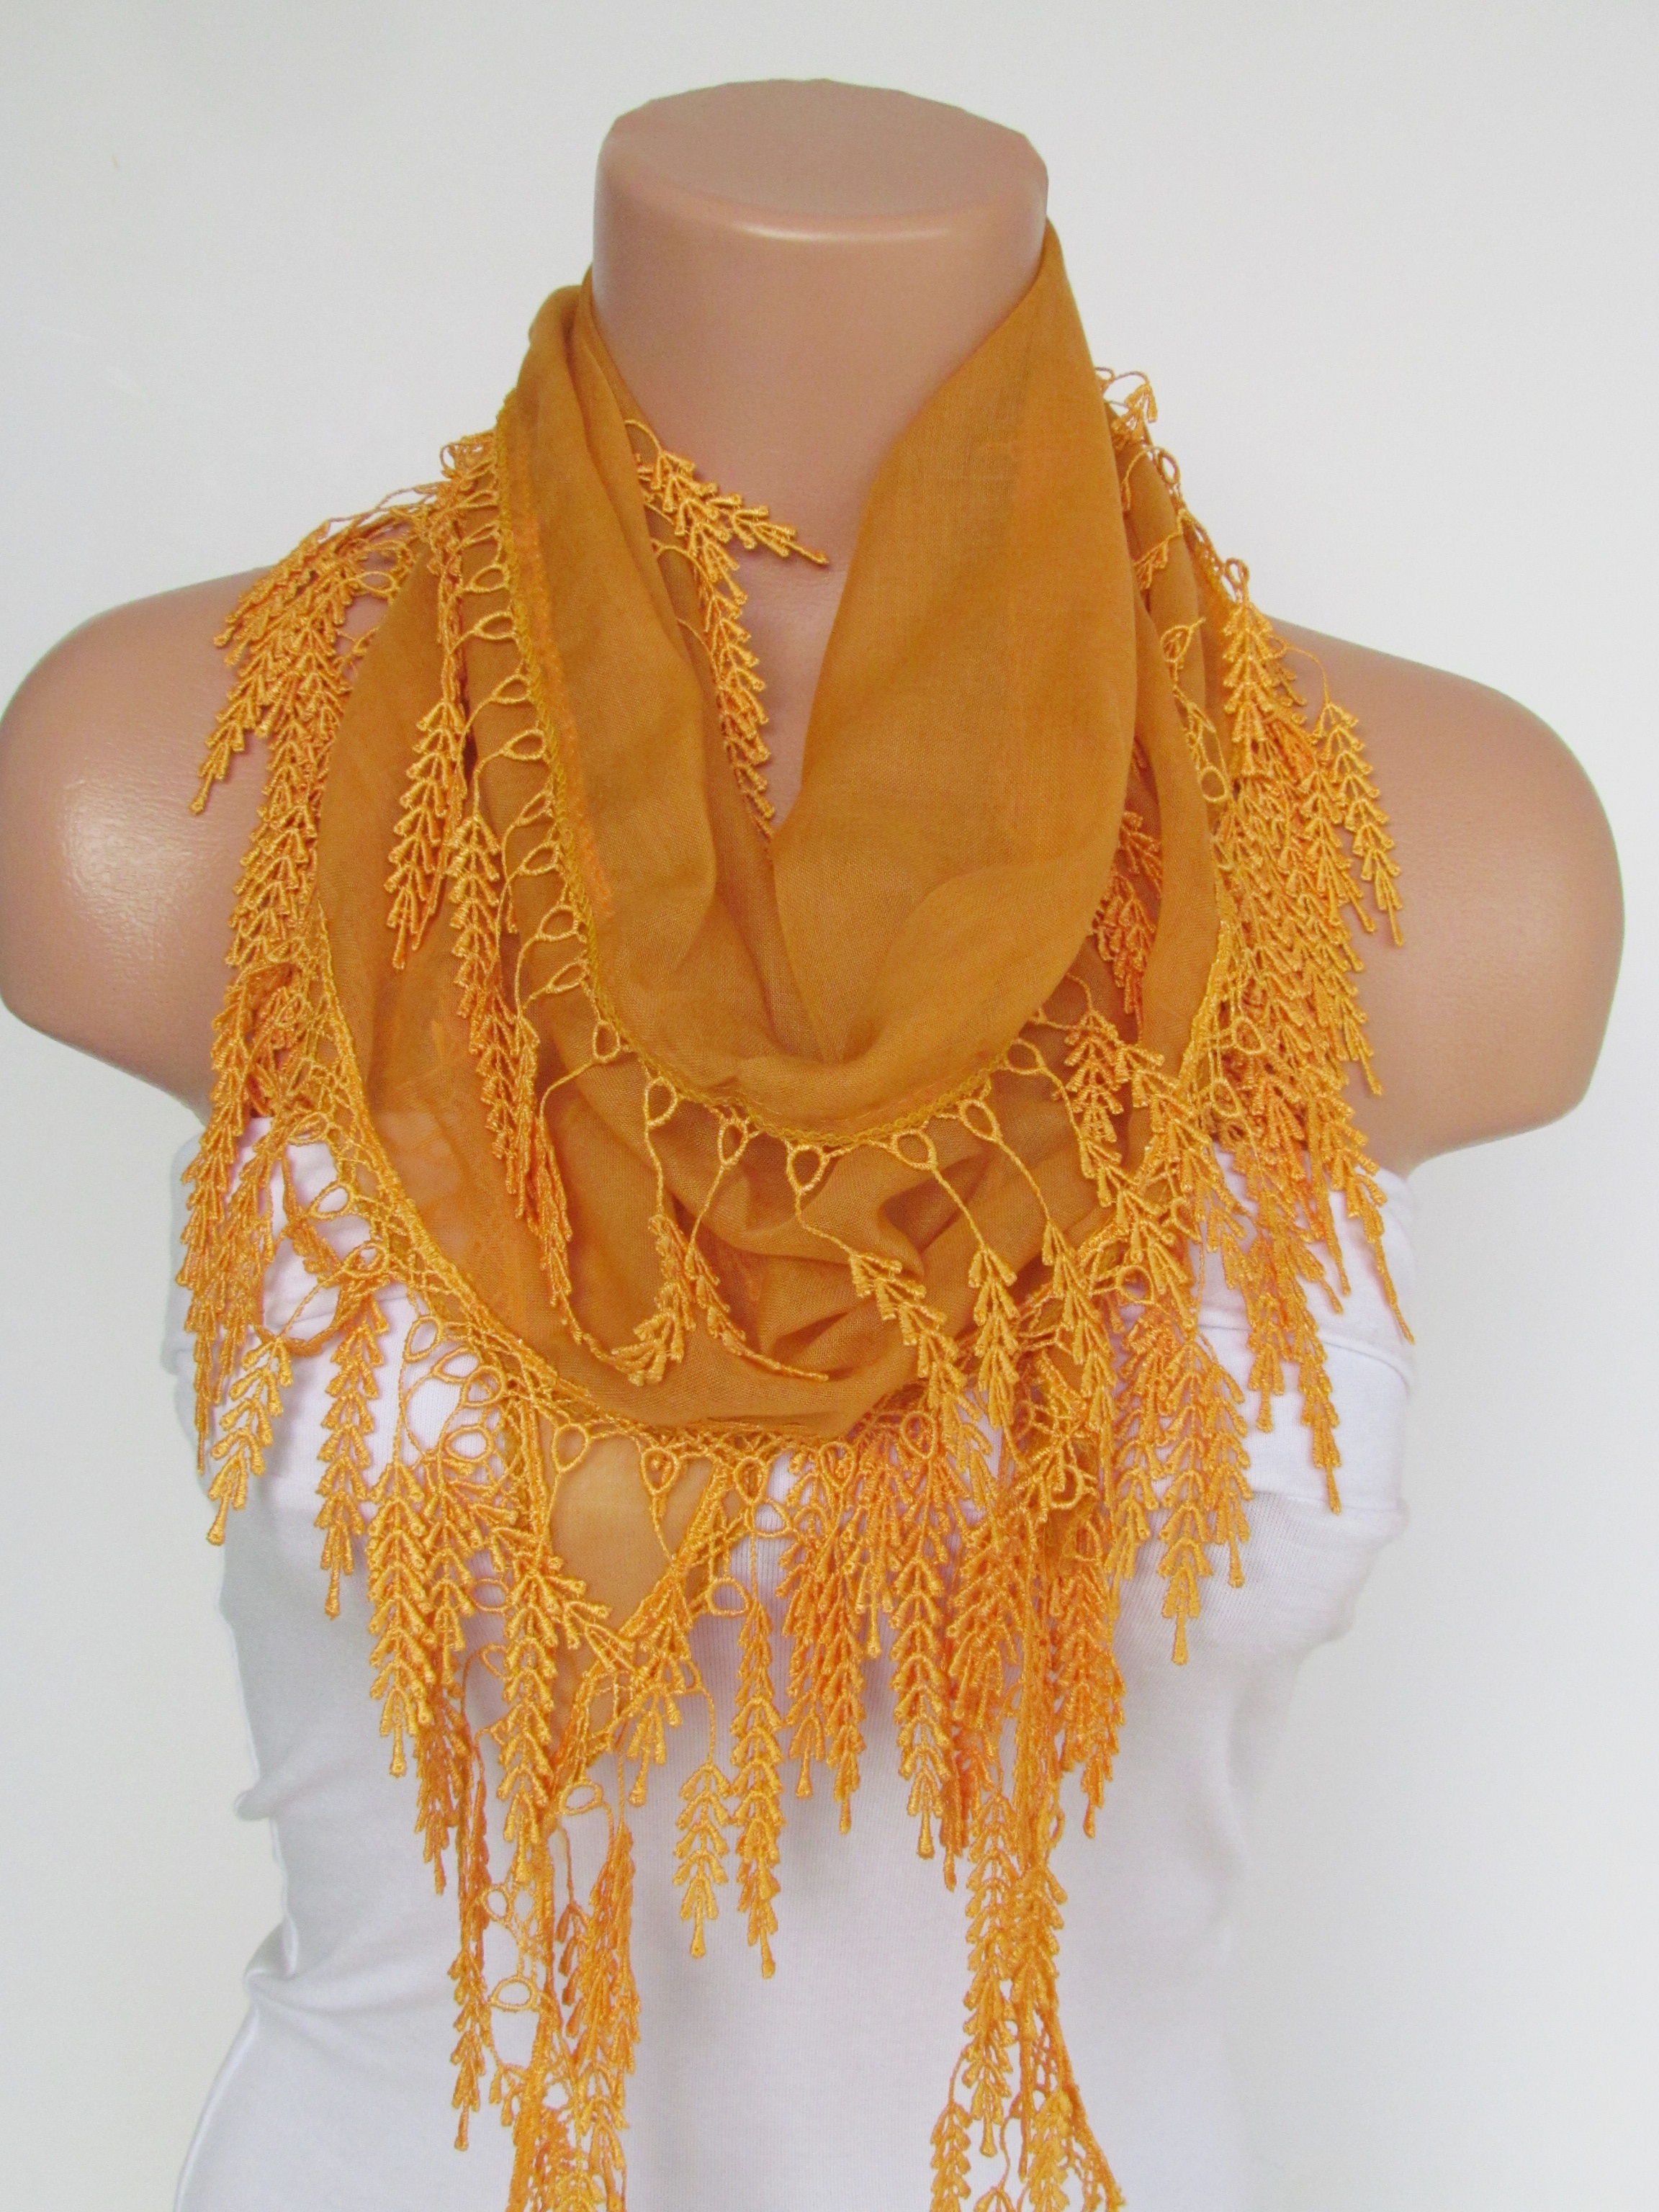 1e56997722718 Long Scarf With Fringe-New Season Scarf-Headband-Necklace- Infinity Scarf-  Spring Accessory-Yellow S on Luulla